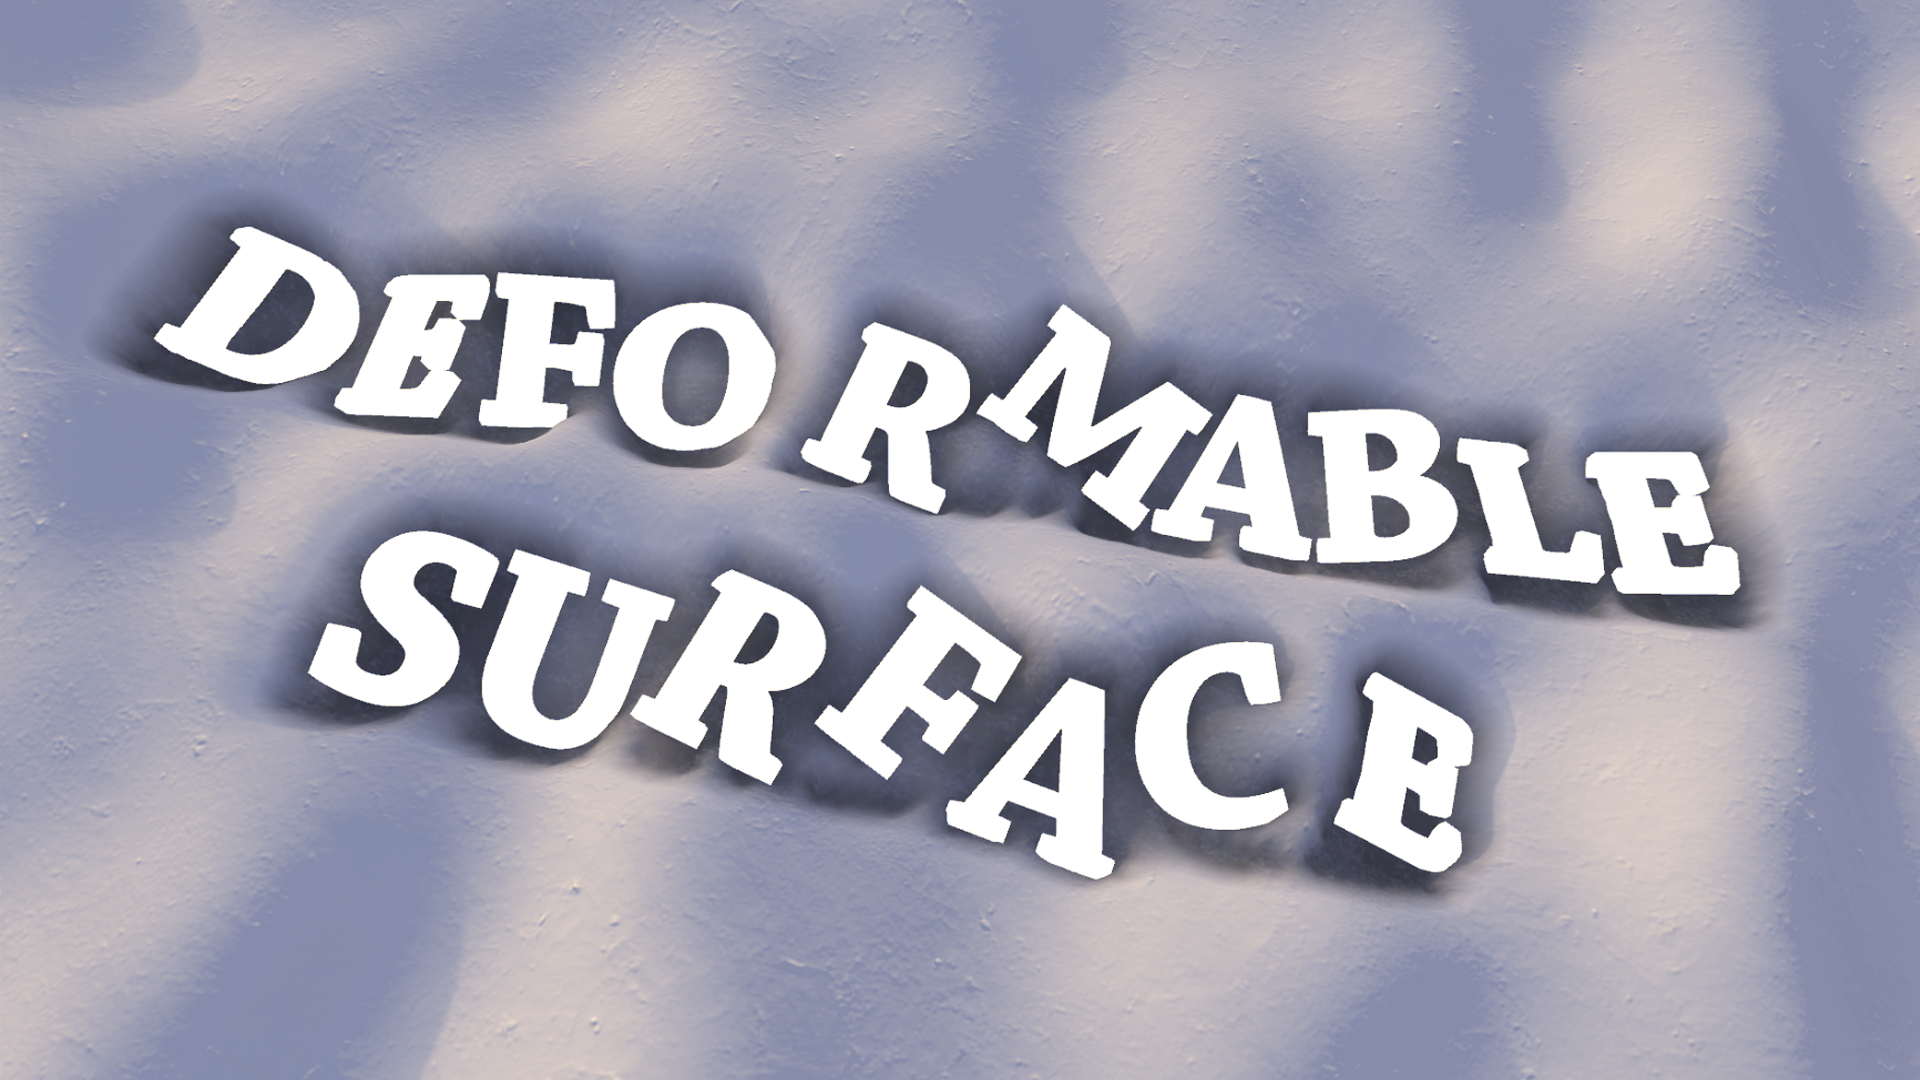 Deformable Surface 2.0